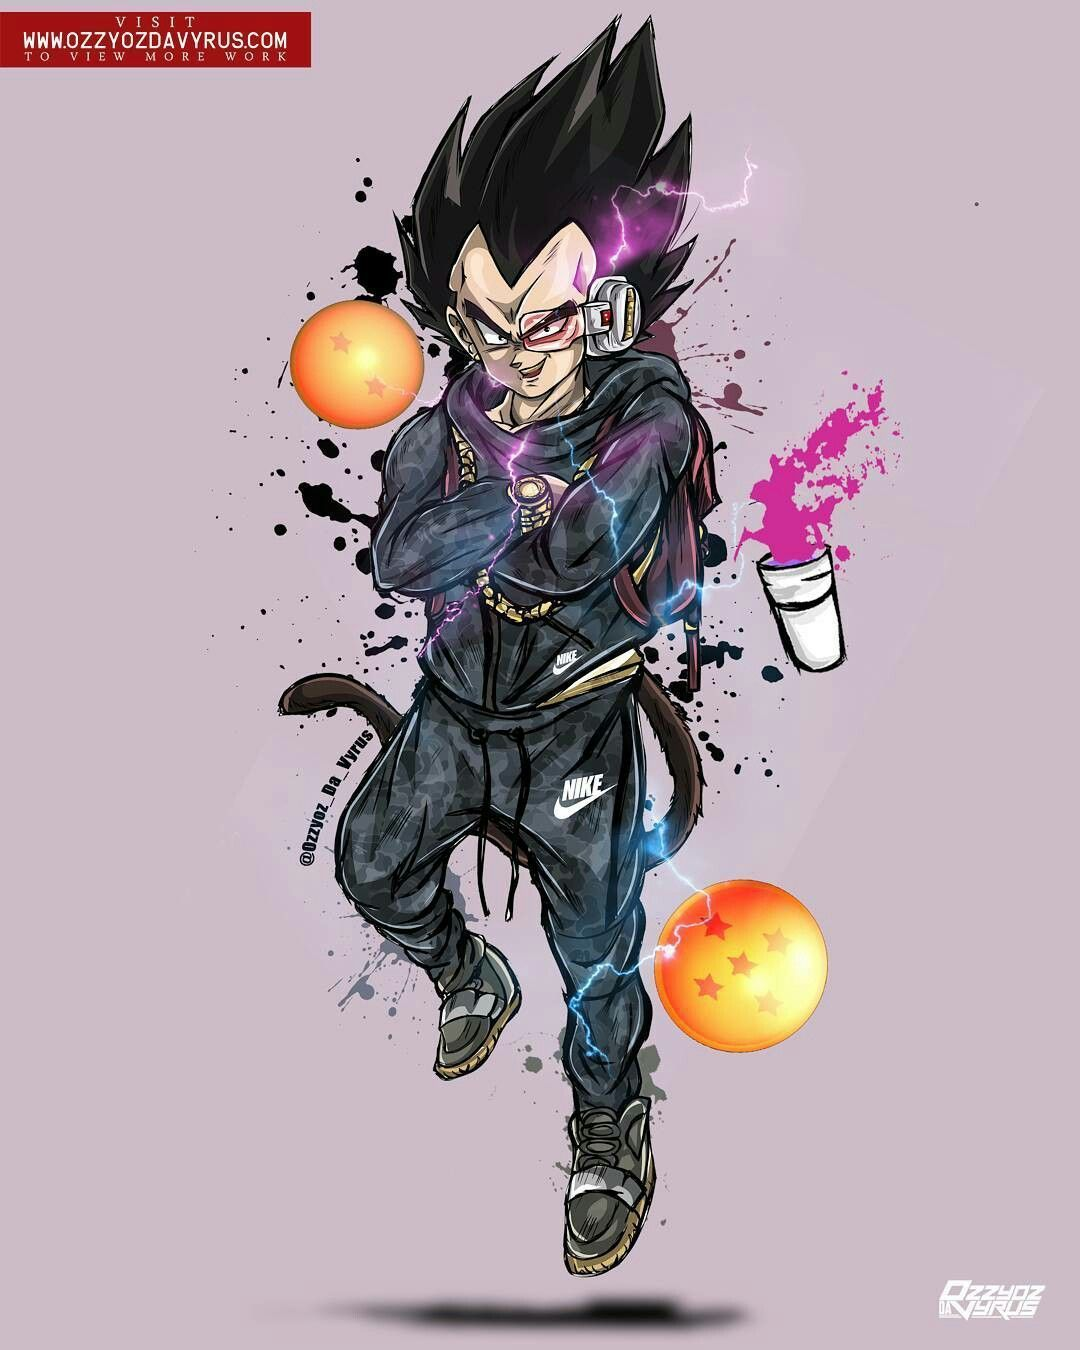 Supreme Dragon Ball Z Wallpapers   Top Supreme Dragon Ball Z 1080x1350